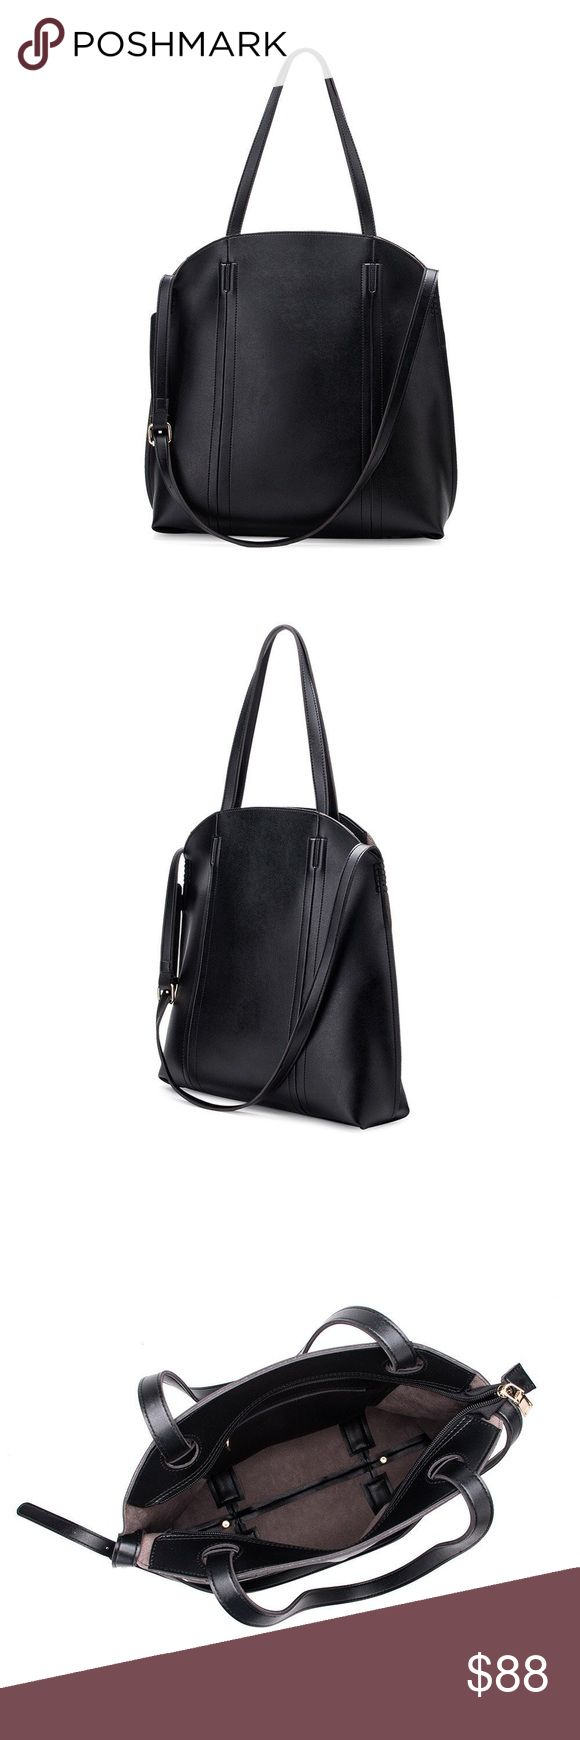 MELIE BIANCO - Genevie Tote Melie Bianco Premium Vegan Leather Top Zipper Interior Zipper Removable Crossbody Strap Included Dimensions 16.75'L x 4'W x 16H' Colors: Black Melie Bianco Bags Totes